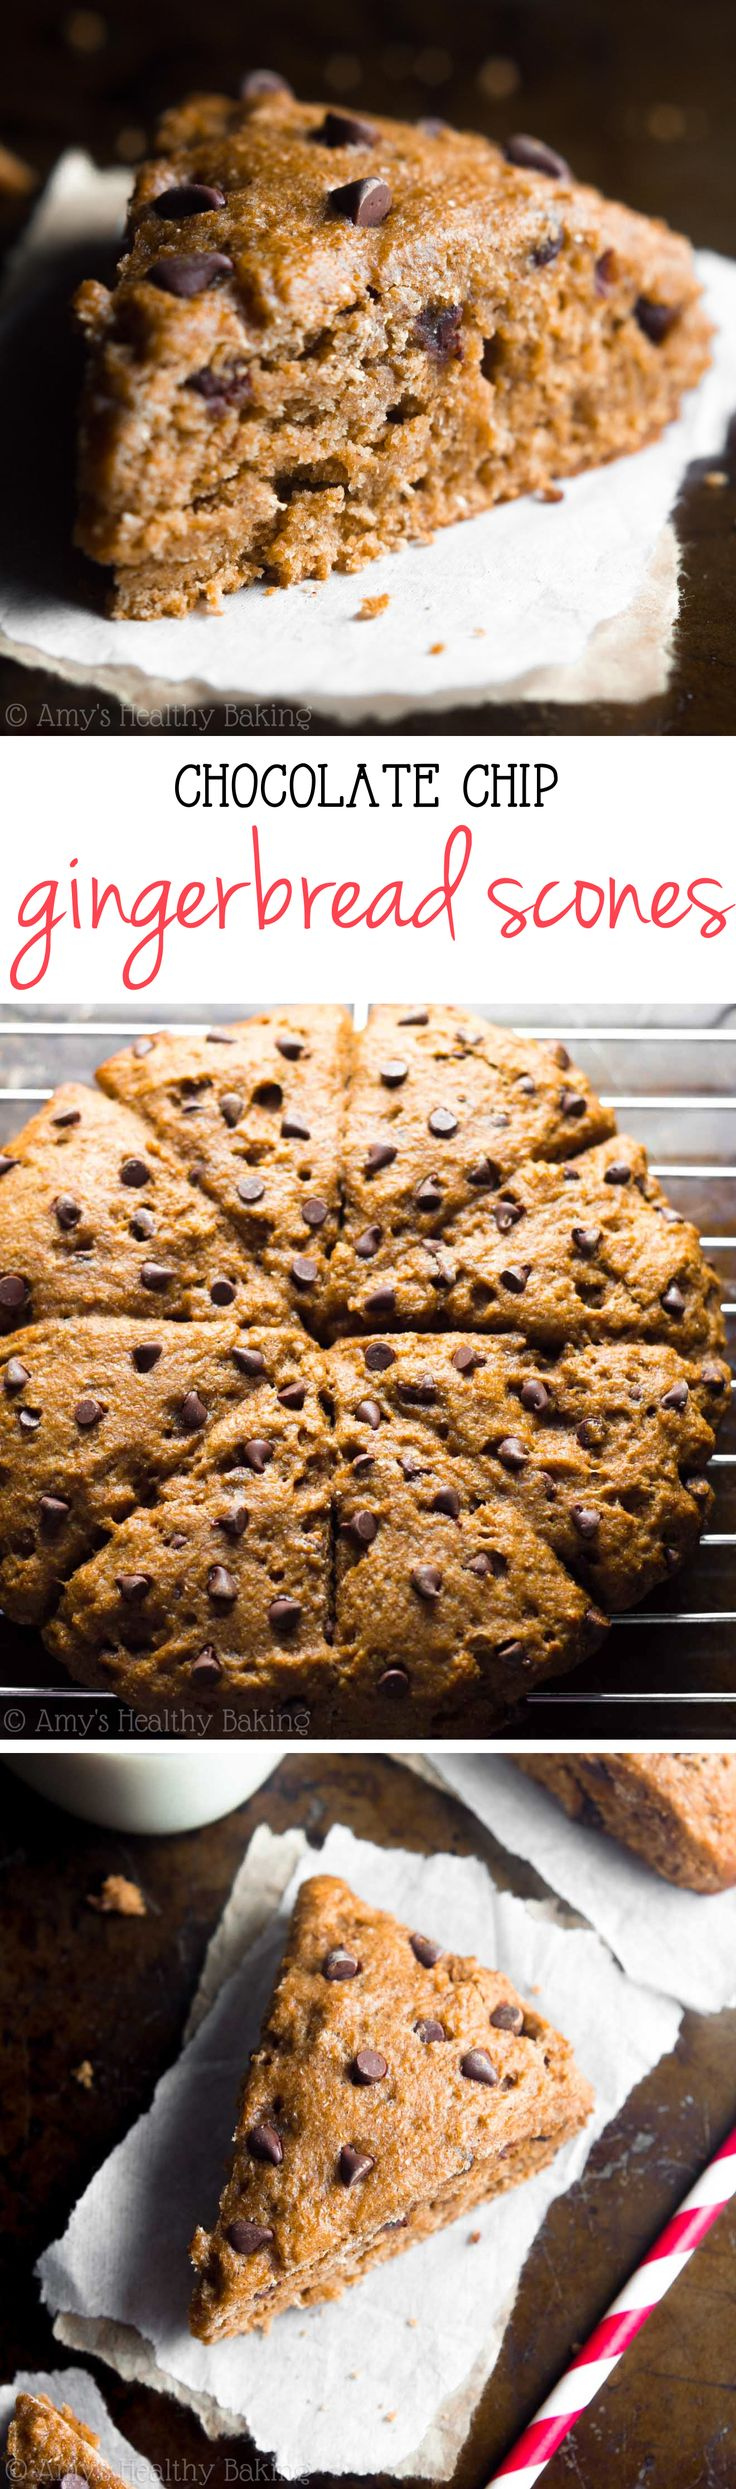 Healthy Chocolate Chip Gingerbread Scones -- say good-bye to dry, crumbly scones forever! These are SO easy, really tender & have 5g of protein!